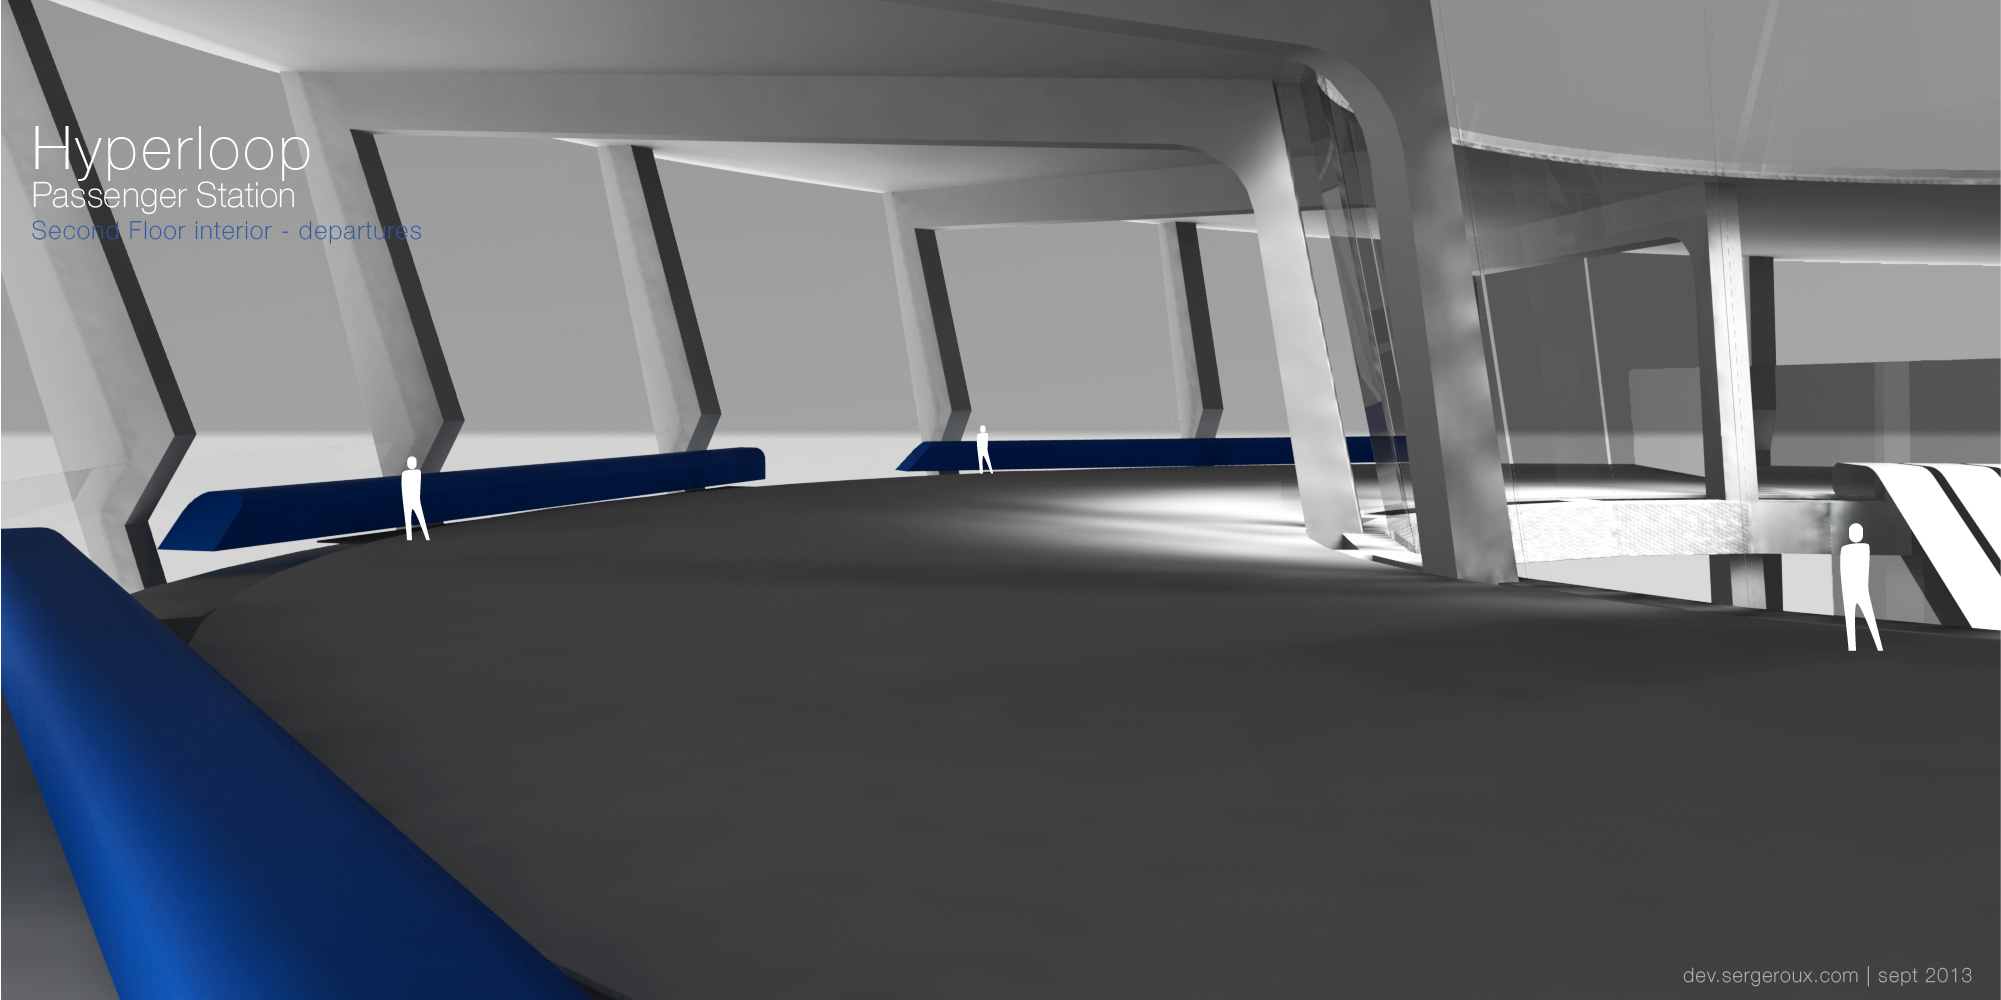 Hyperloop Station - Second floor interior